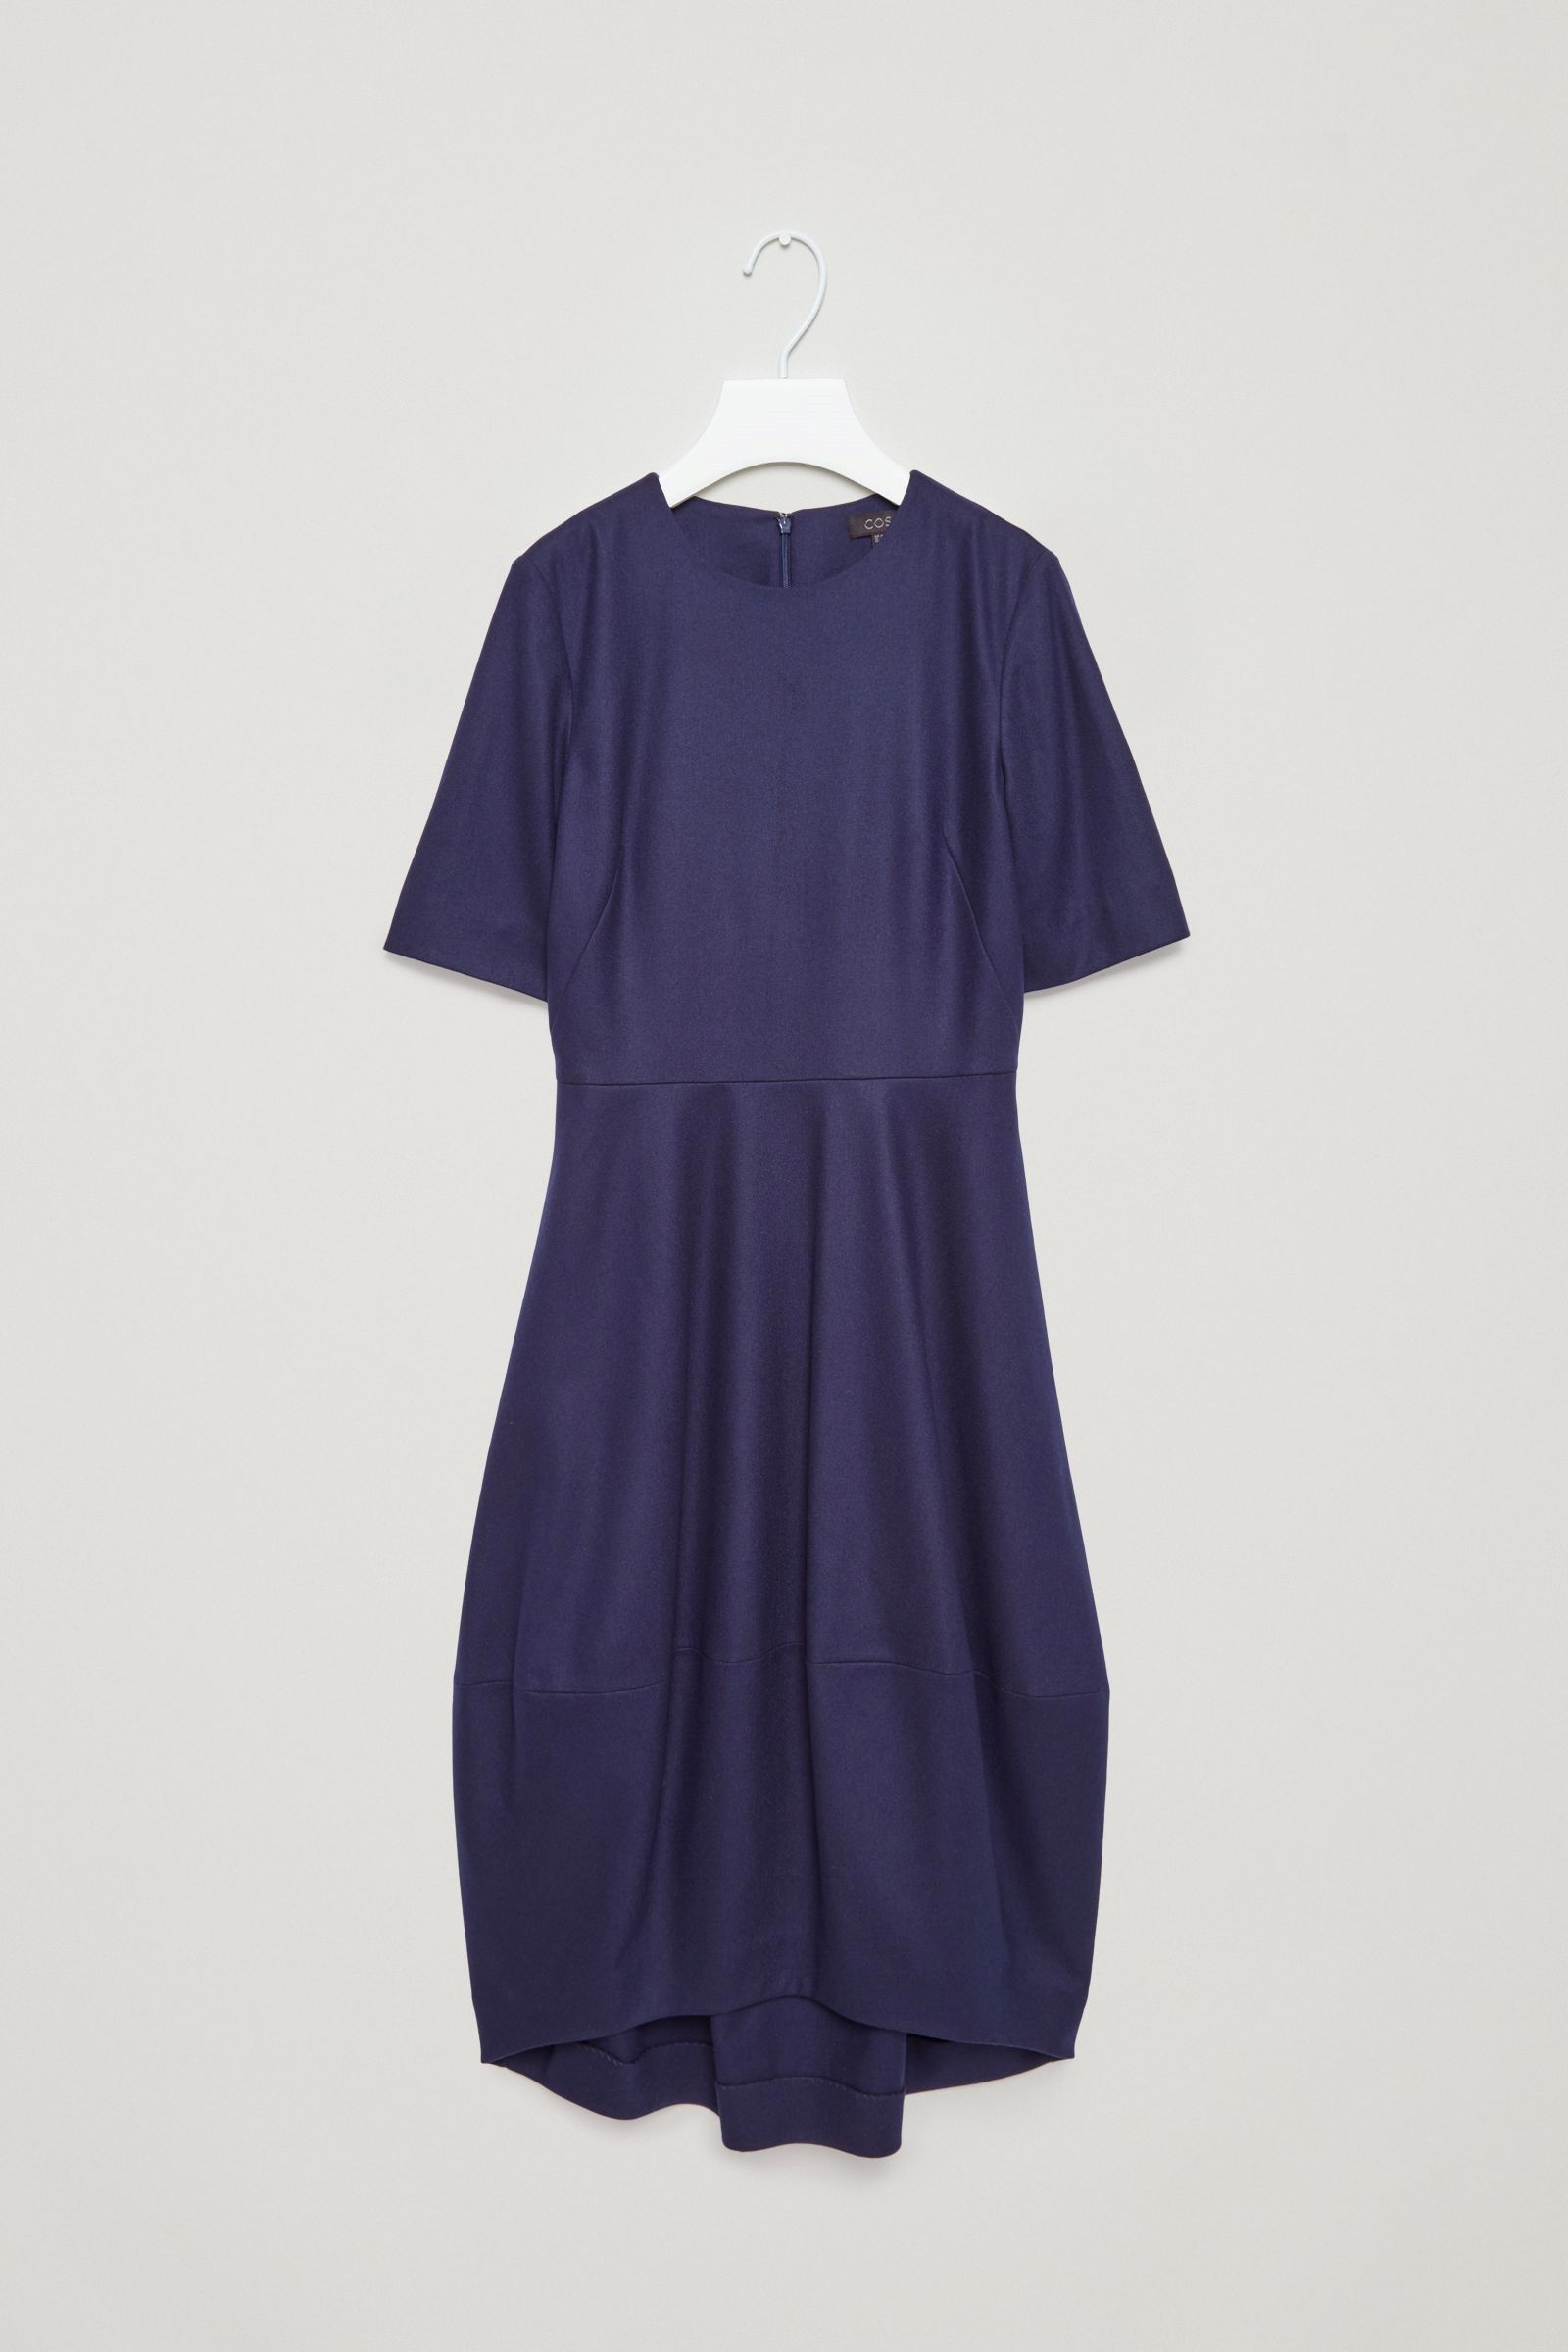 This dress is made from smooth woolmix with a cocoon shape